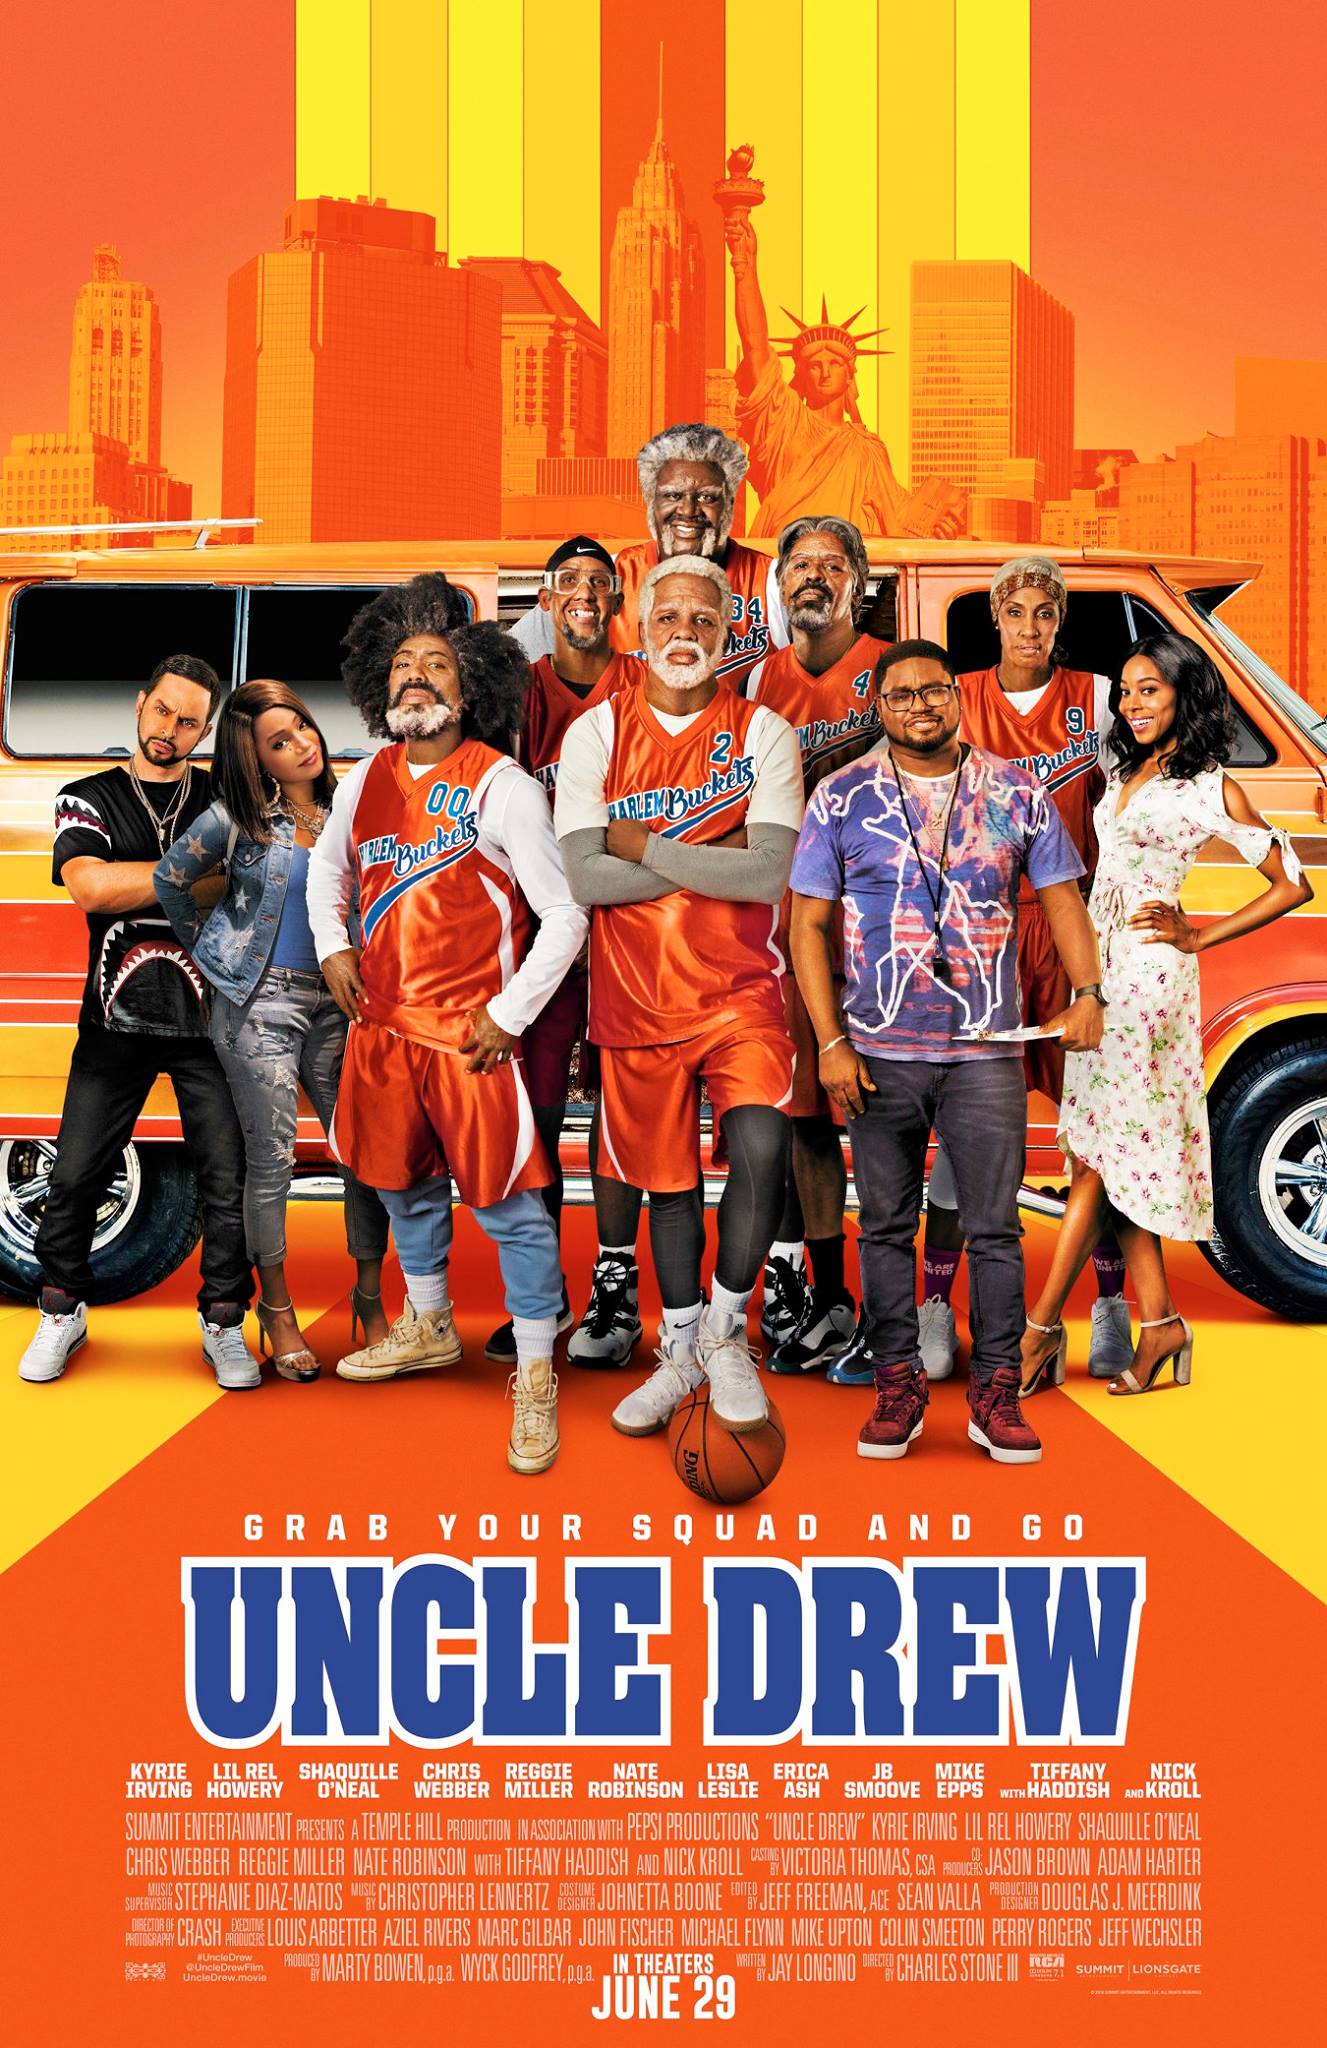 Uncle Drew - by Kathia WoodsUncle Drew is a delightful comedy starring comedian LiL Rel. The story revolves around Rel's character Dax who gambled everything to formulate a winning basketball team for the Rucker. The league is supposed to help him eliminate a middle school mishap however before Dax gets an opportunity to redeem himself his star player is enticed away by Mookie the middle school rival. Dax girlfriend Jess played by Tiffany Haddish sends him backing when she discovers his misfortune. Soon young Dax finds himself without a team, home and girlfriend. He visits the barber shop where he's made aware of Uncle Drew. The most significant play court player in history. So what does he do he do? He looks for this Uncle Drew who ends up finding him. There is only one small matter Uncle Drew is a lot older a lot older. Seeming like a hopeless situation he accompanies him on a road trip.Dax and Drew hit the highway to put the old team together. Uncle Drew played by Kyrie Irving is delightful. He's a combination of 70's blackness, ladies' man, and guru. The makeup job at times was a little challenging, but the comedy was on point. Rounding out the Senior Basketball crew are Reggie Miller as Lights, Chris Webber as Preach, Nate Robinson as Boots, and Shaquille O'Neal as none other than Big Fella. Lisa Leslie is Preach's wife Petty Lou, and Erica Ash as Dax's love interest Maya and Boots Granddaughter. Parts of this movie are predictable, but you're not watching this movie for deep thought. It's a fun escape about misfits. These Misfits are playing for redemption especially Dax who gets to put behind him that terrible middle school disaster. It's about Friendship and second chances. So if you're looking for a comedy with a little feel-good coating Uncle Drew is for you.